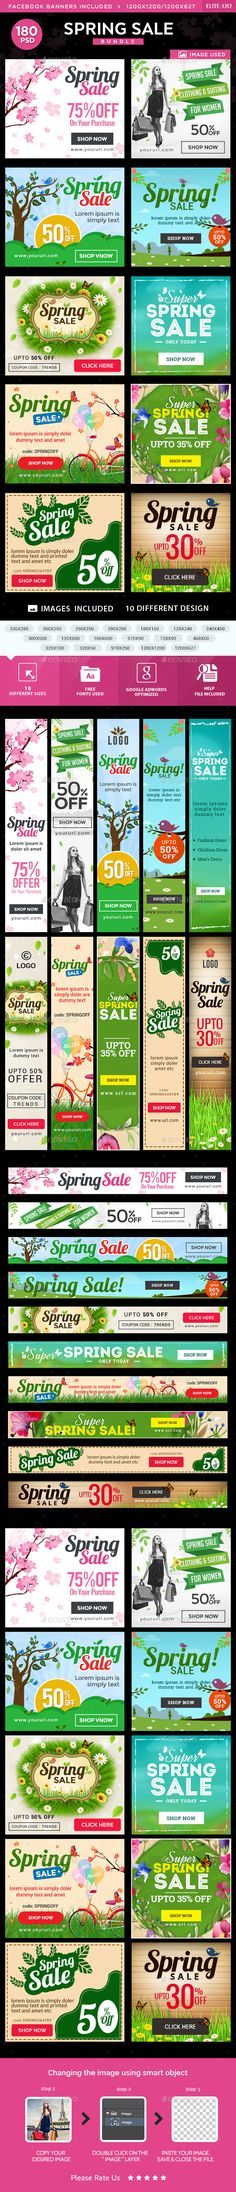 Spring Sale Web Banners Bundle - 10 Sets Design Templates PSD. Download here: http://graphicriver.net/item/spring-sale-banners-bundle-10-sets/15434442?ref=ksioks